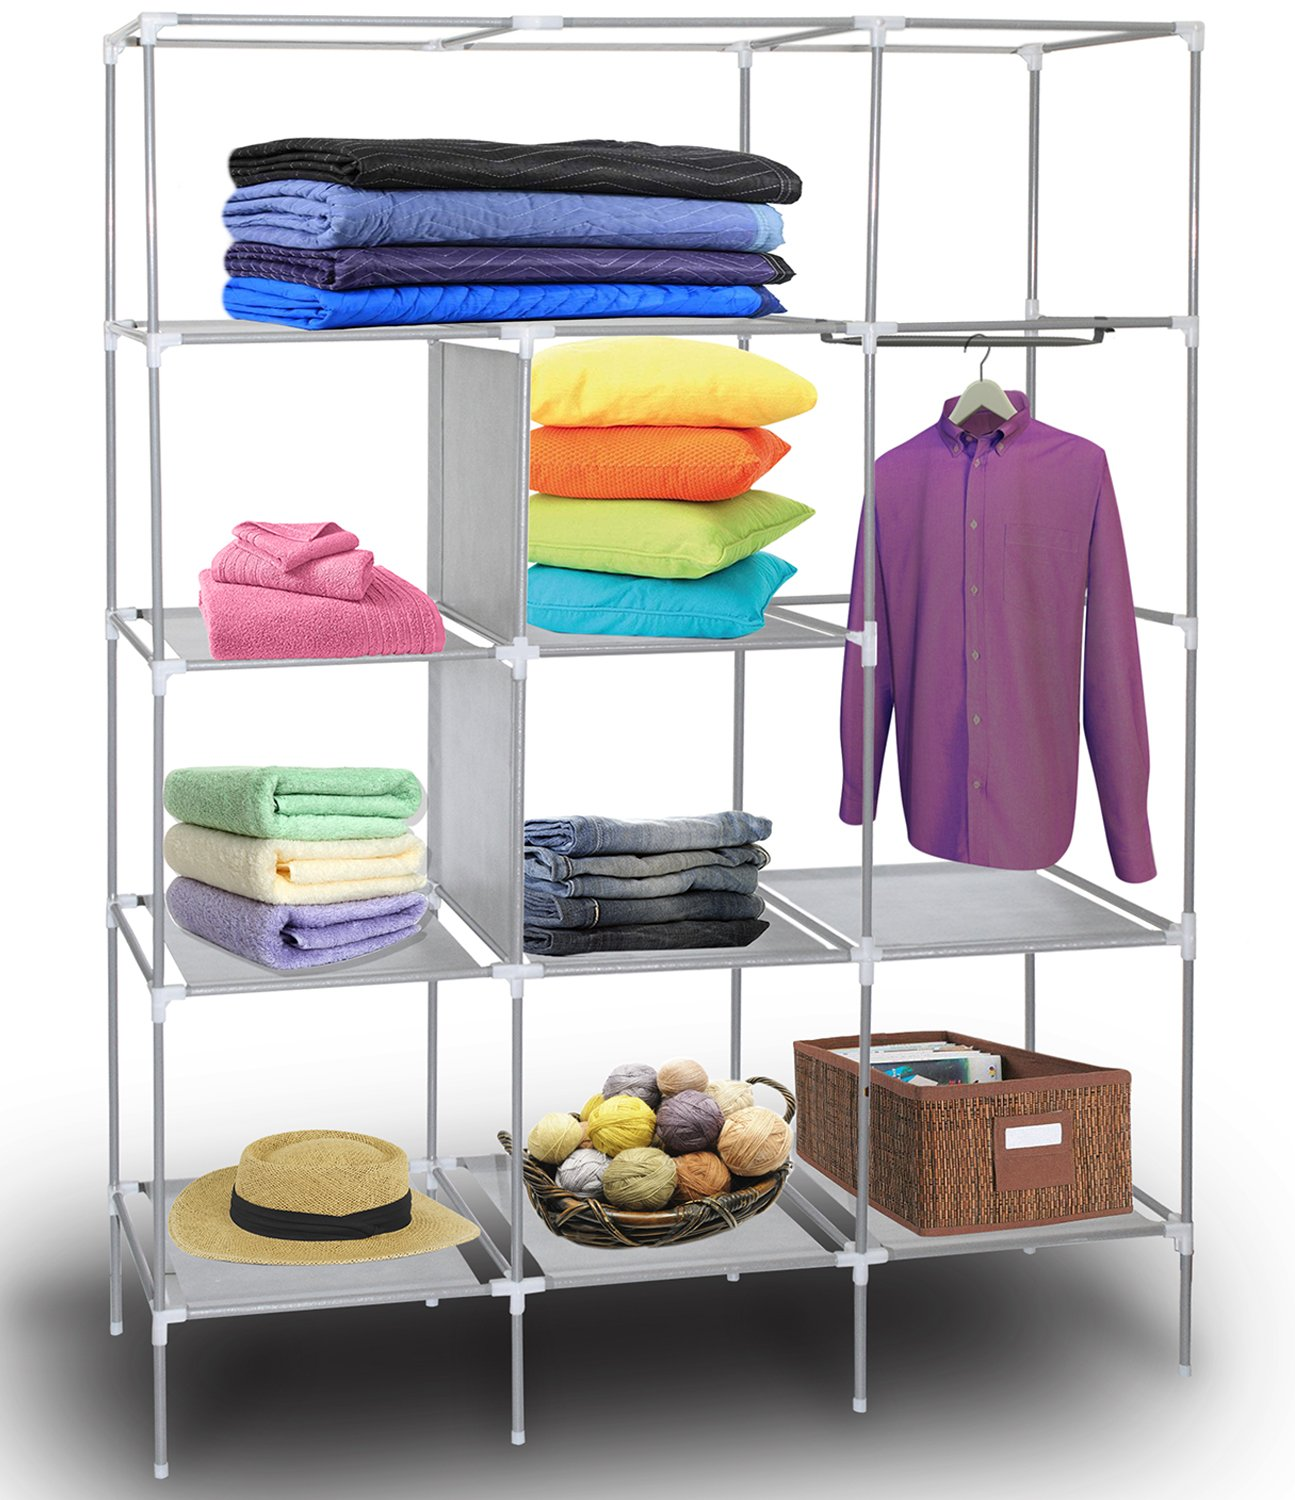 Amazon Portable Storage Organizer Wardrobe Closet & Shoe Rack